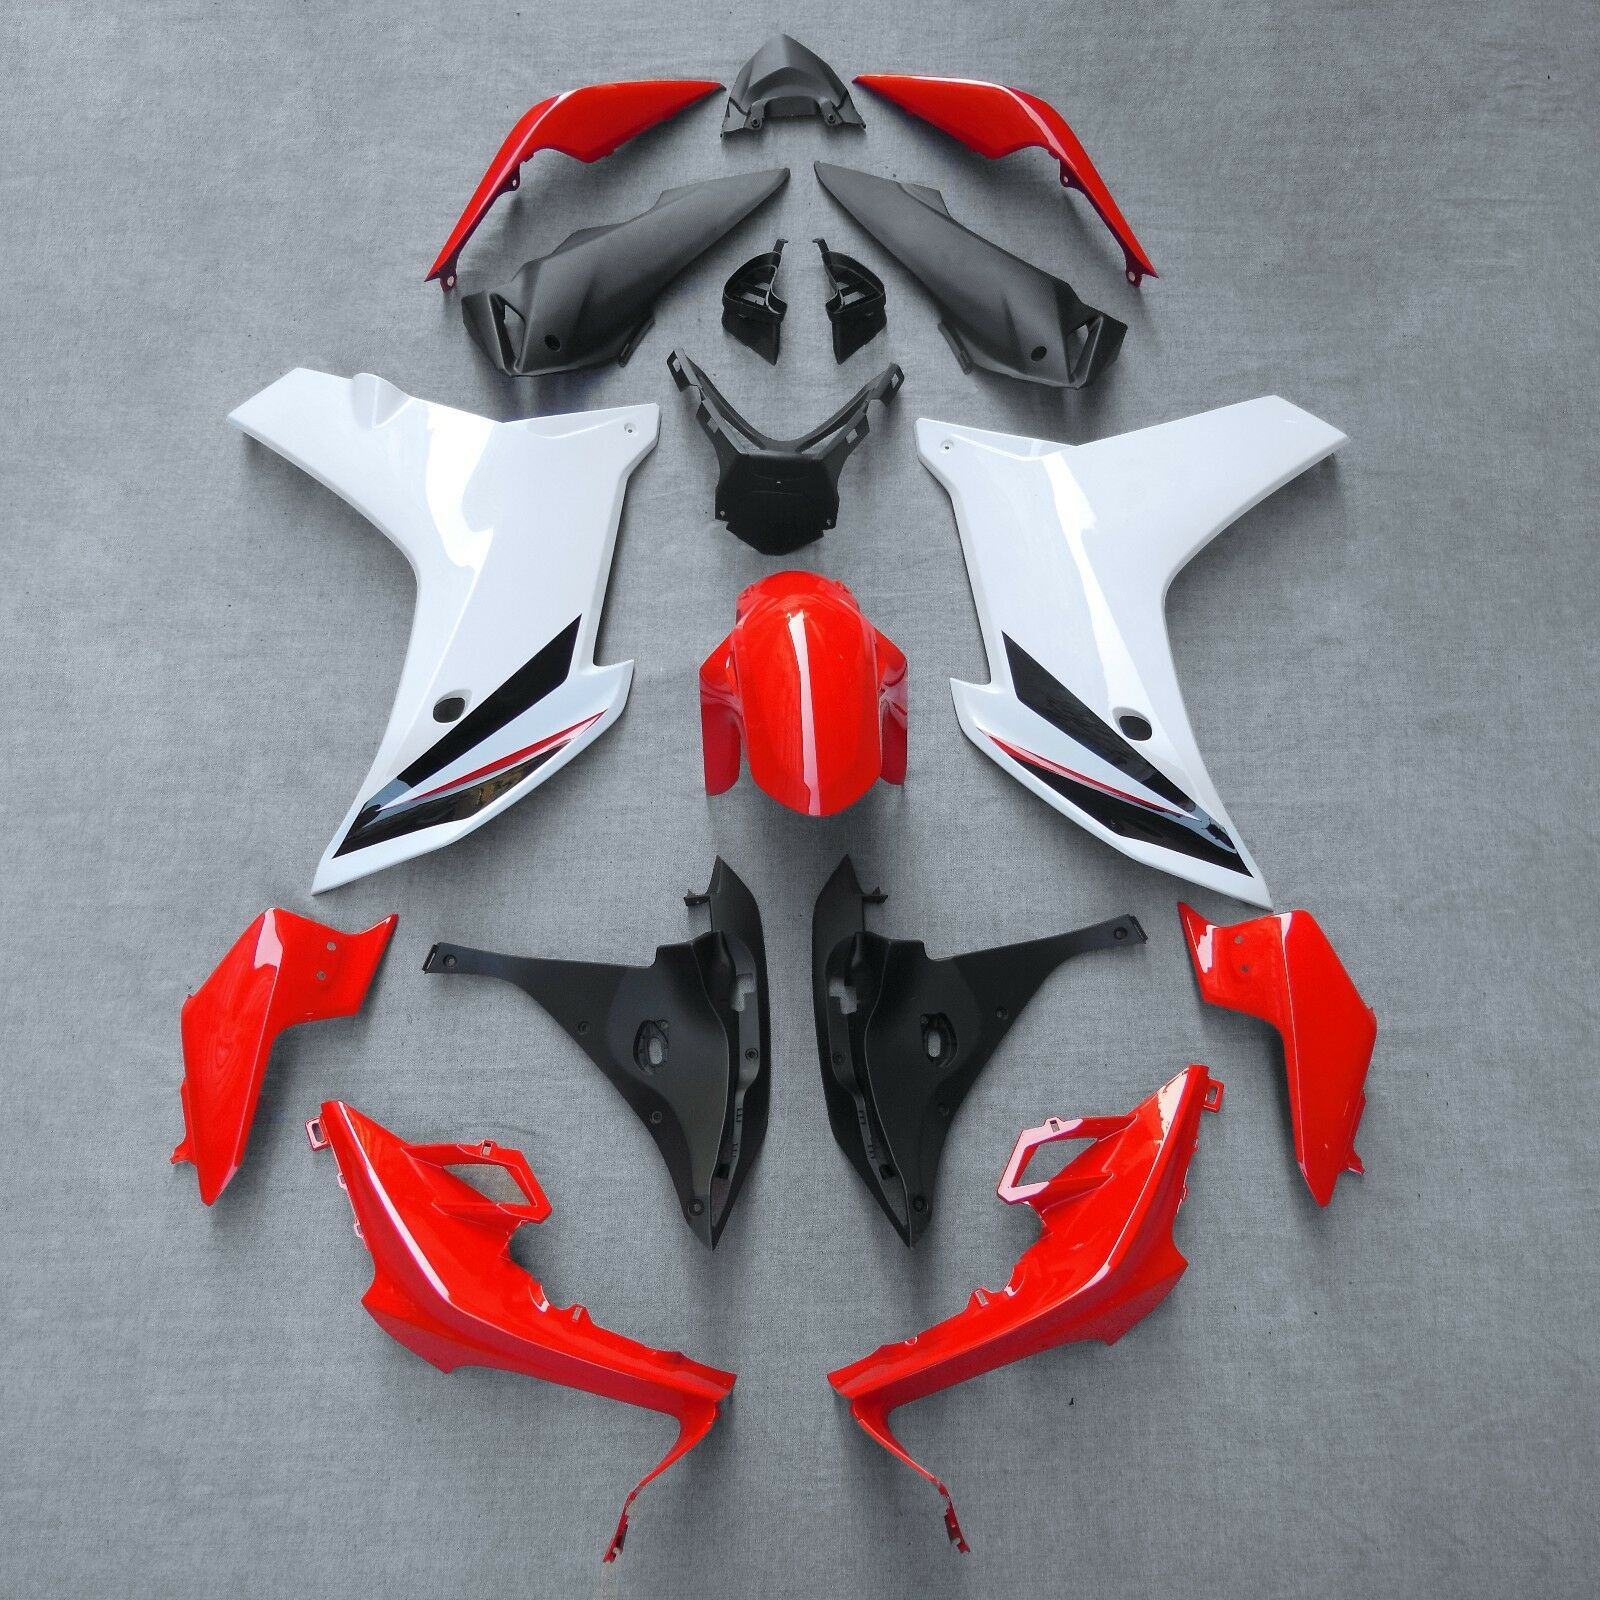 All new fairing kit for Honda CBR600F 2011 2012 2013 2014 red white CBR 600F 11 12 13 14 model injection ABS fairings set image